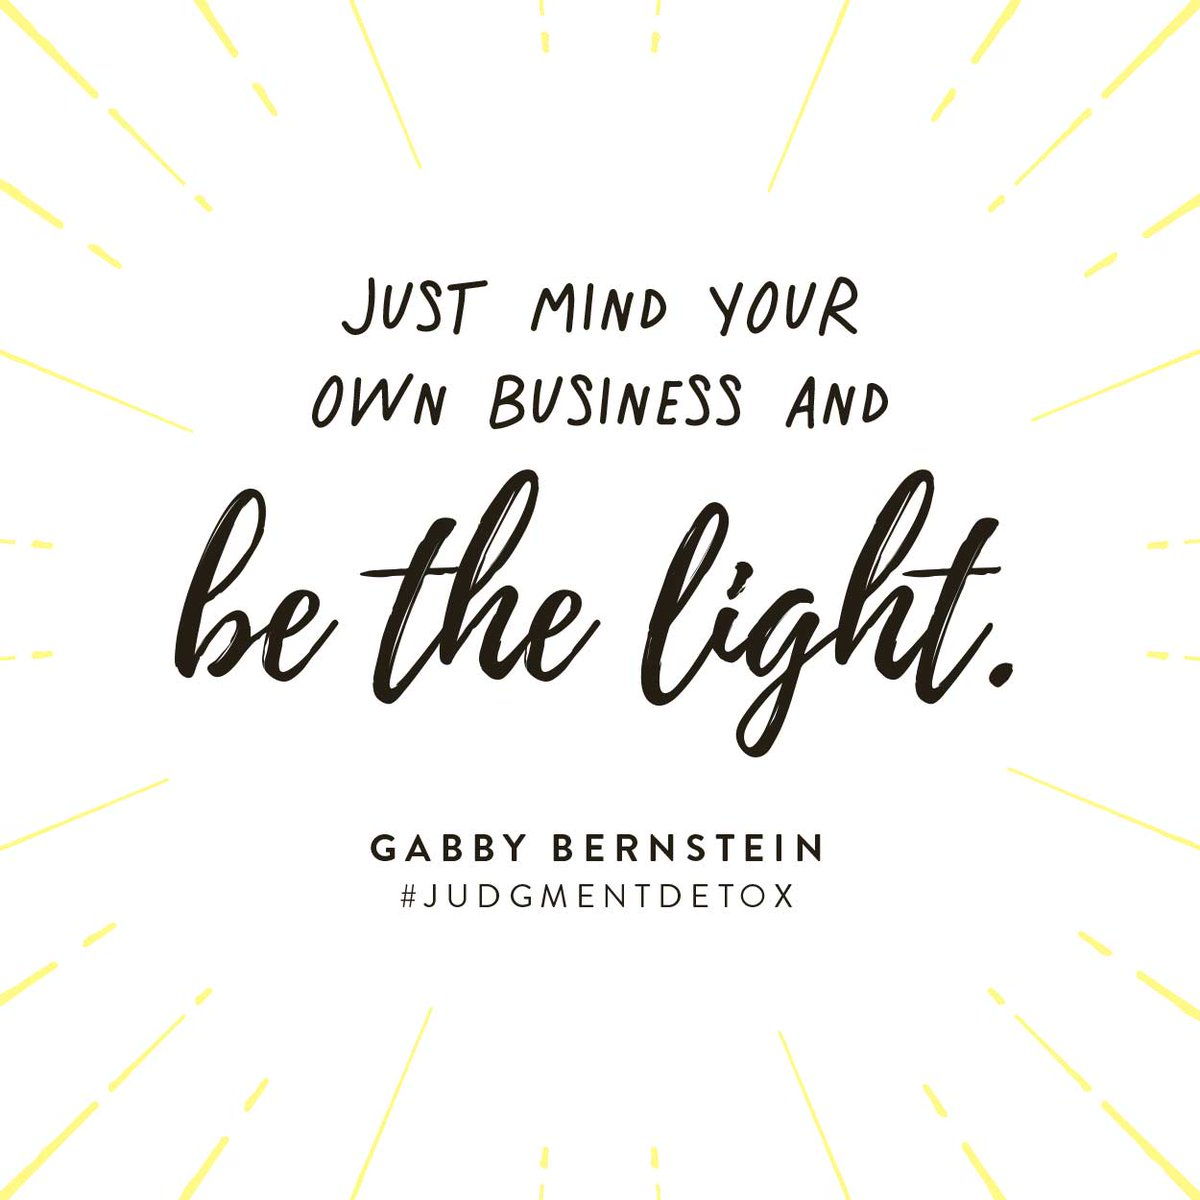 GabbyBernstein photo